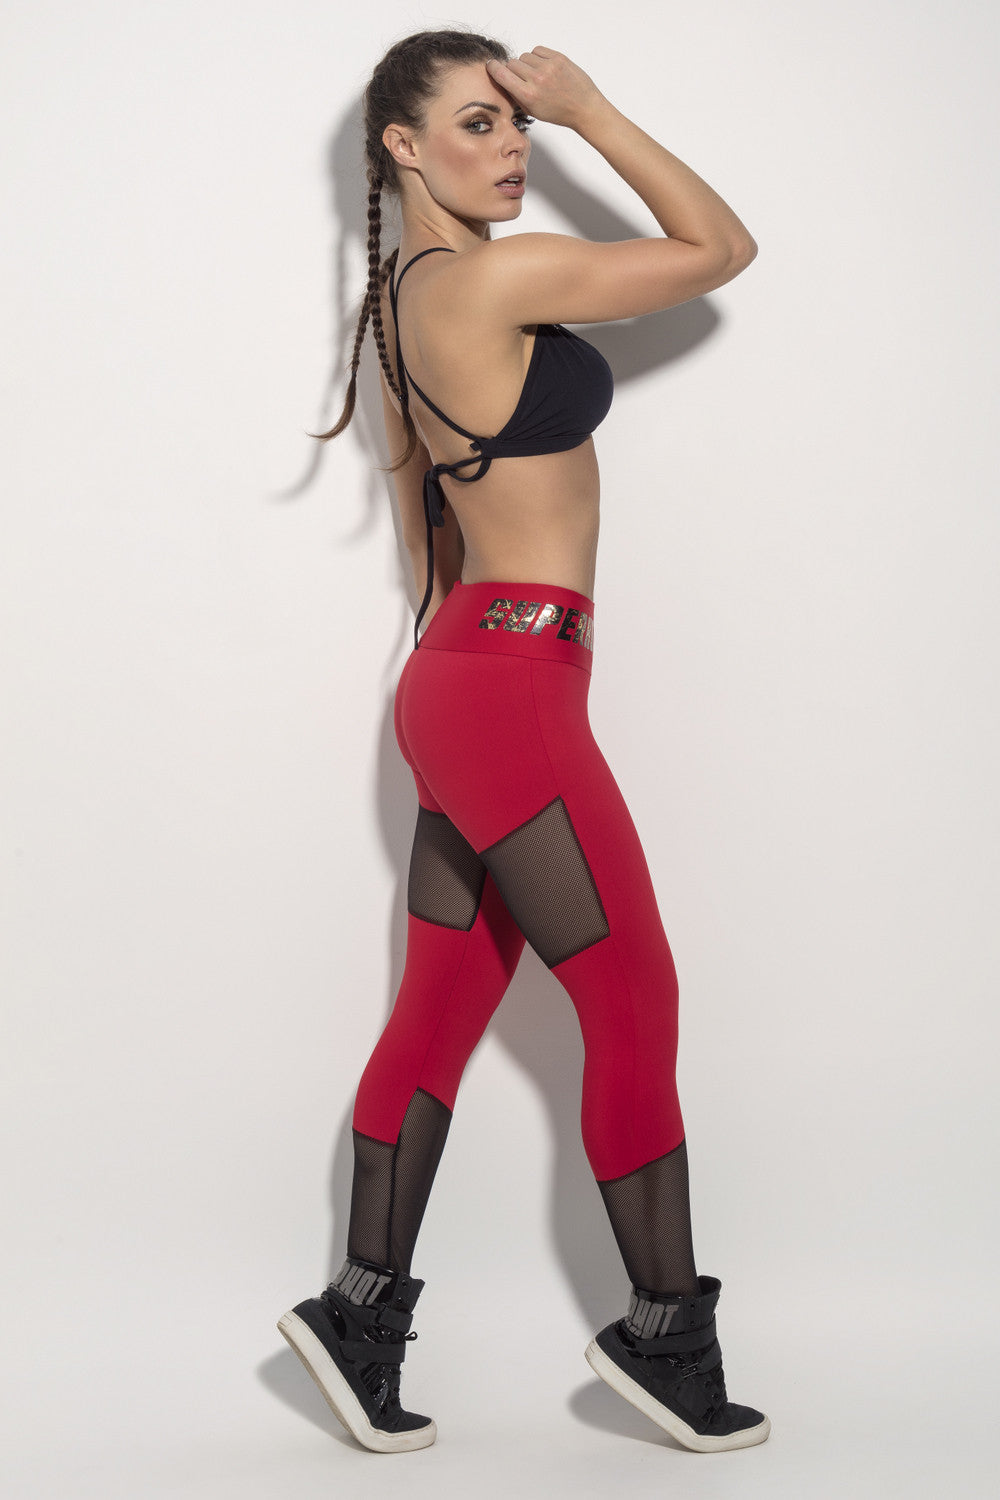 LEGGING SUPERHOT SPORTS - RED - SUPERHOT - FitZee